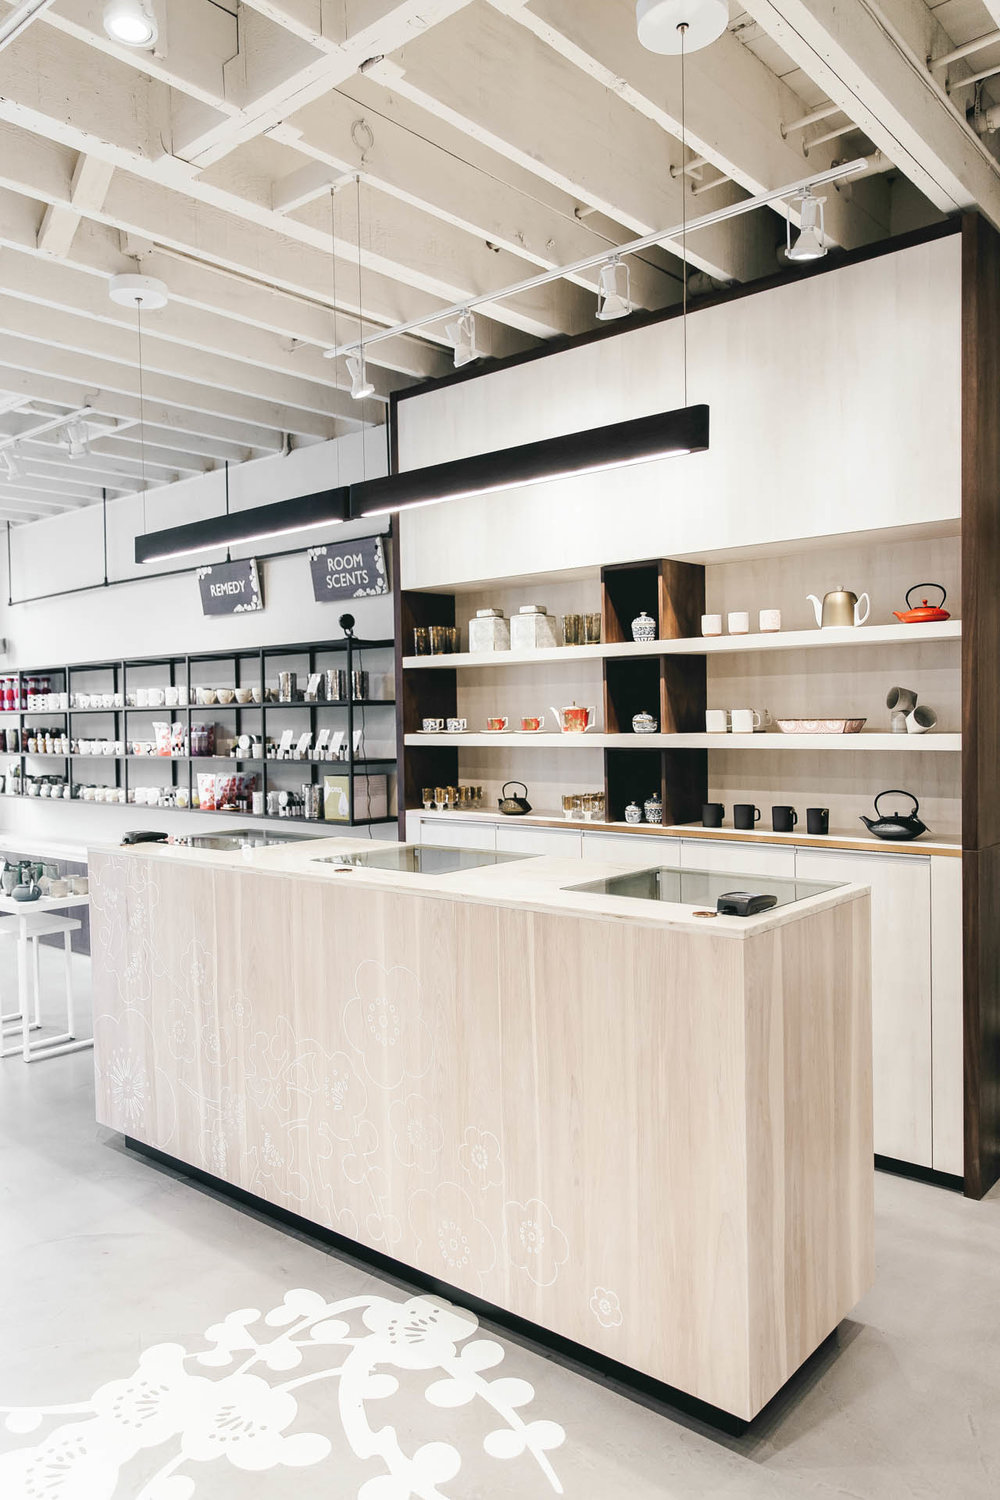 Silk_Road_Tea-8.jpg